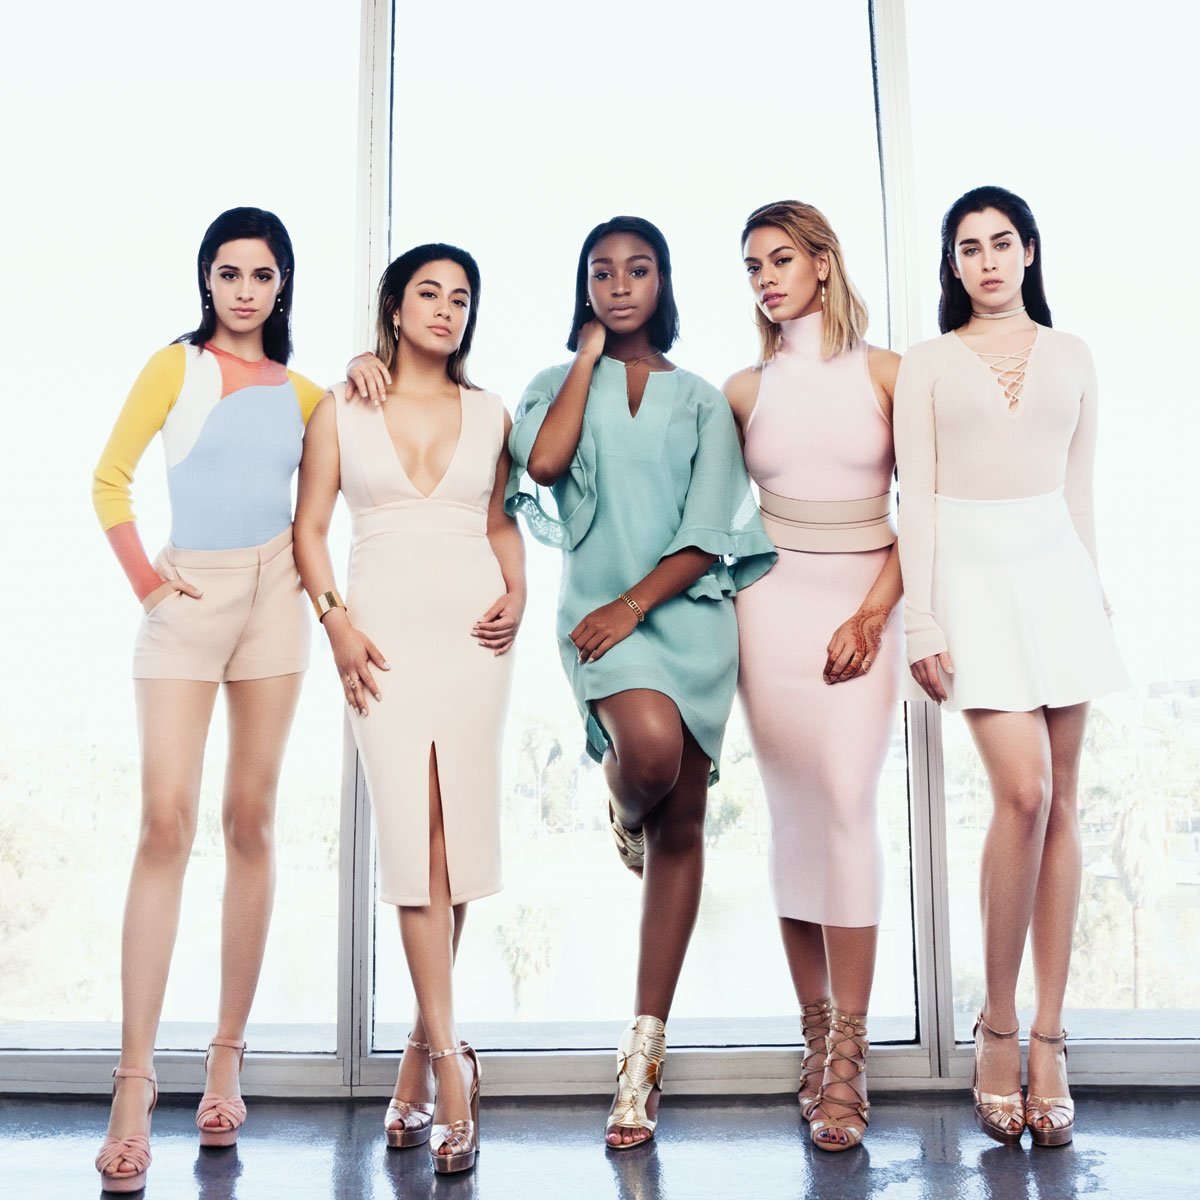 Why @FifthHarmony is the world's hottest girl group https://t.co/1NSJKJKAJ3  #4YearsOfFifthHarmony https://t.co/OpXGwqTT3n